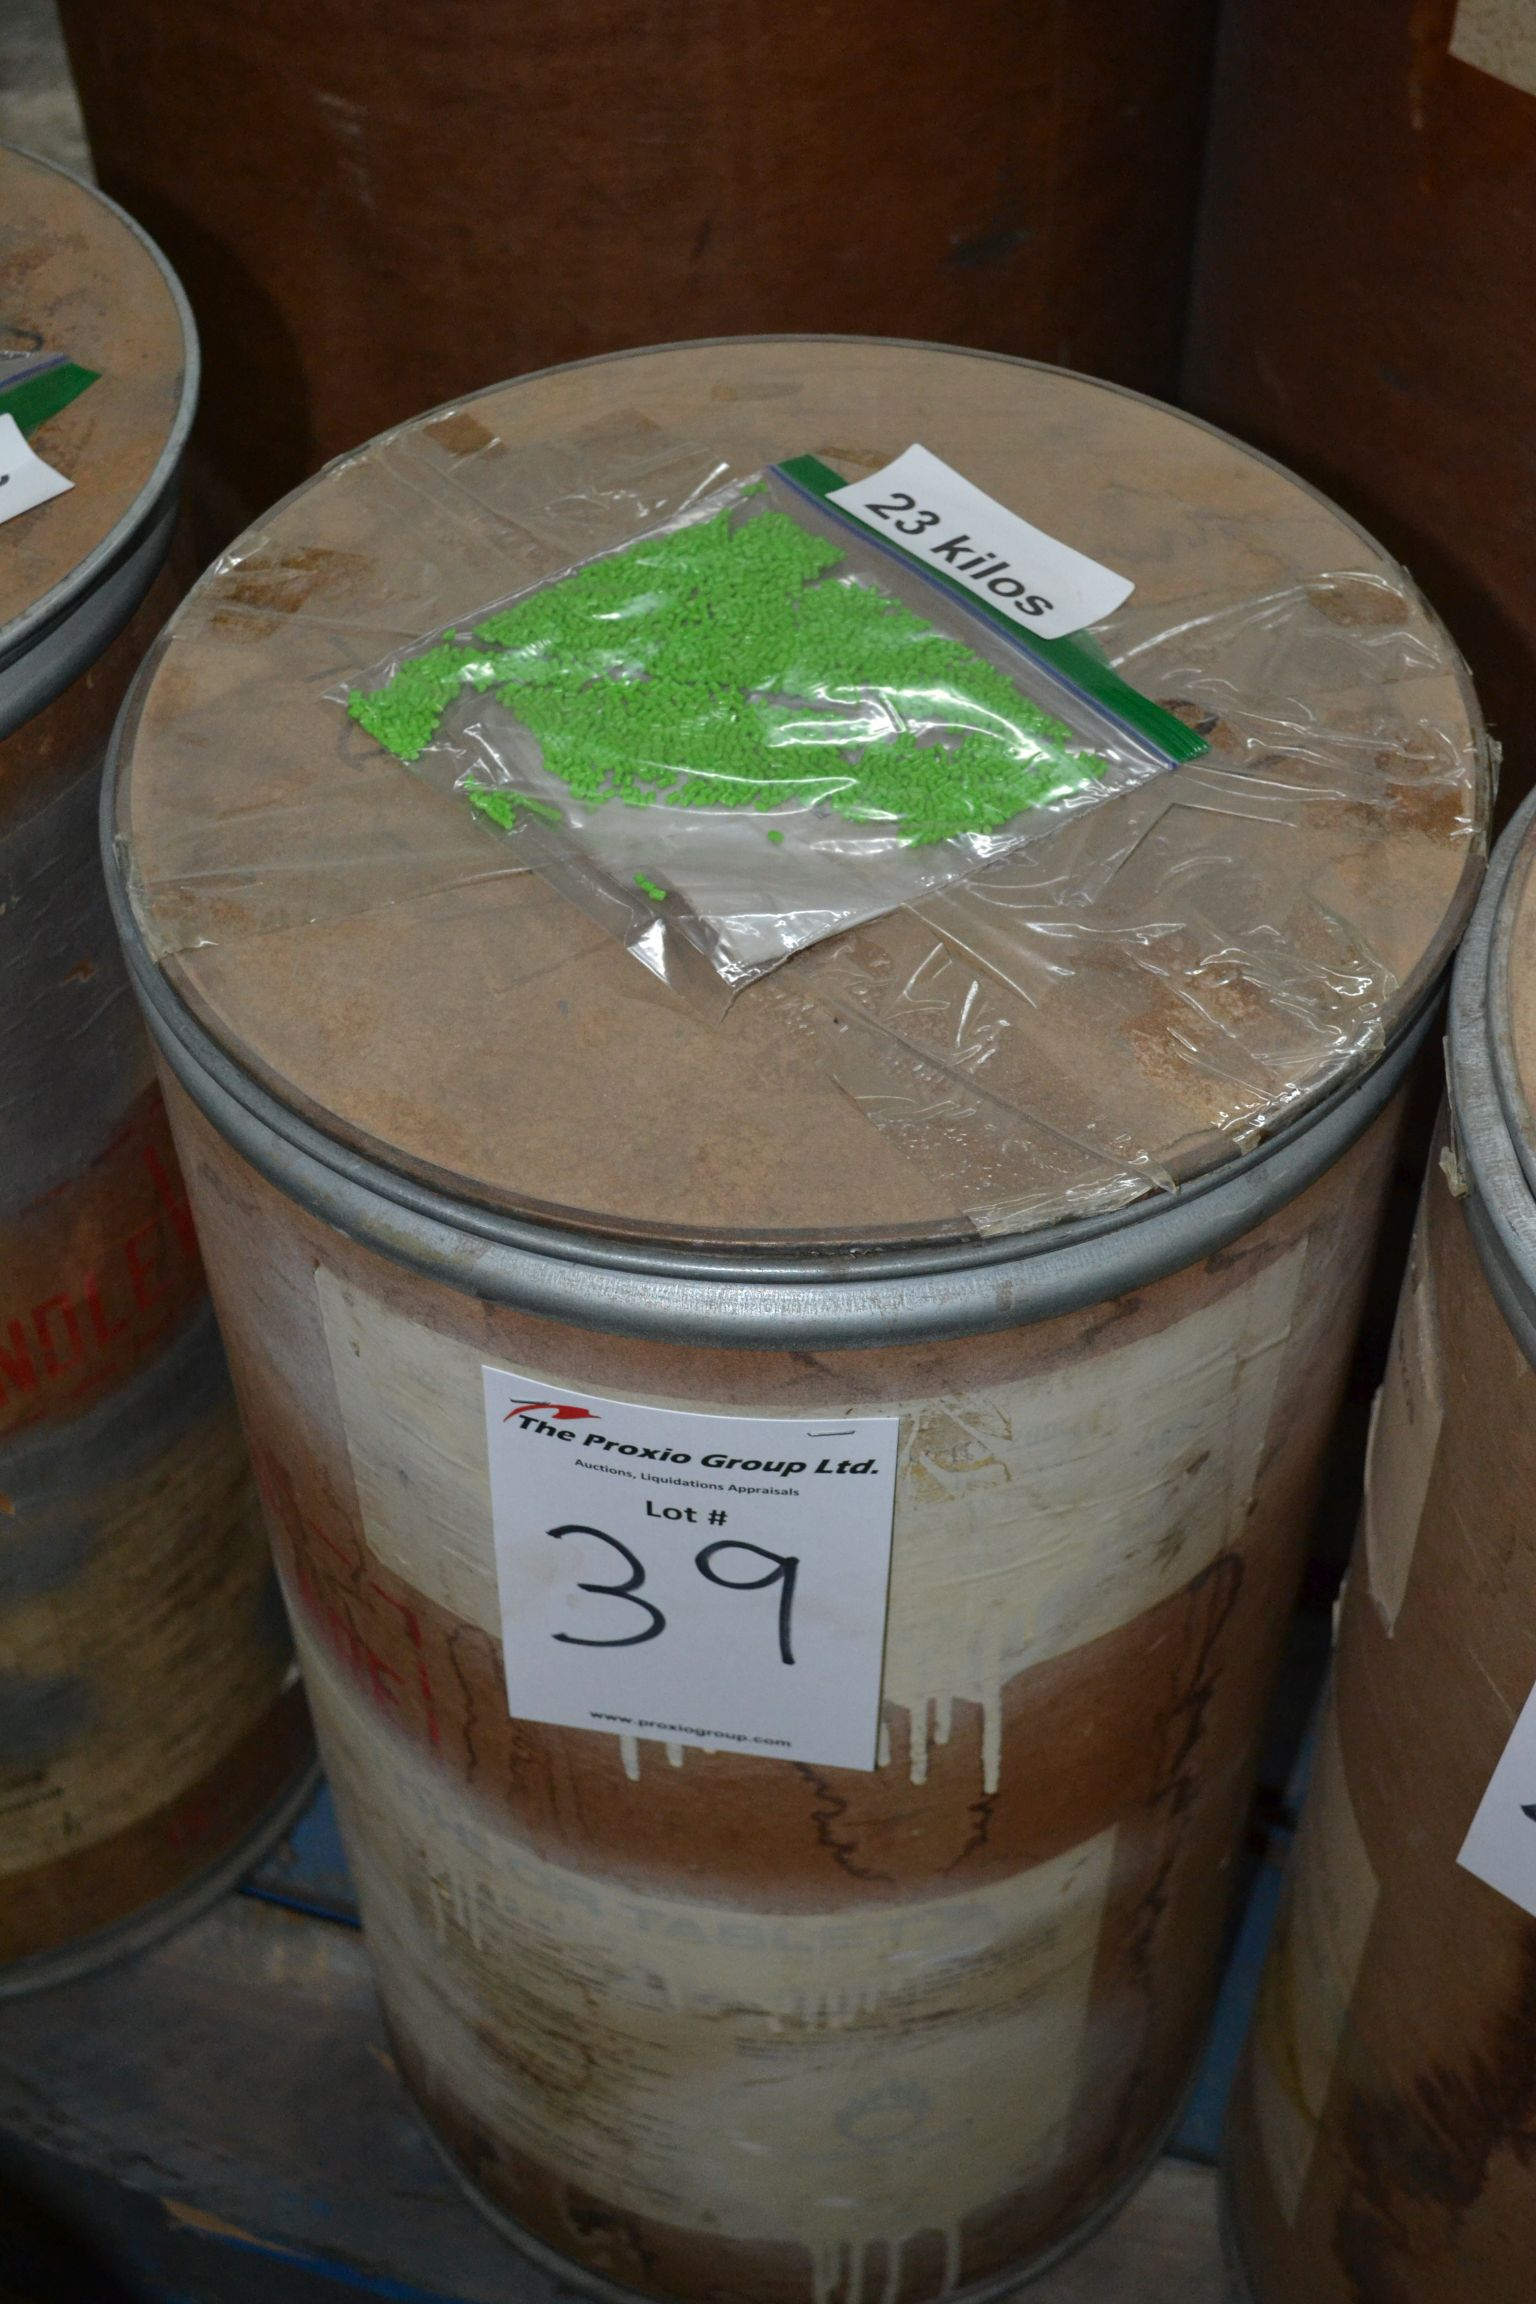 Lot 39 - Lot colored resin Light Green, Approx 23 KG